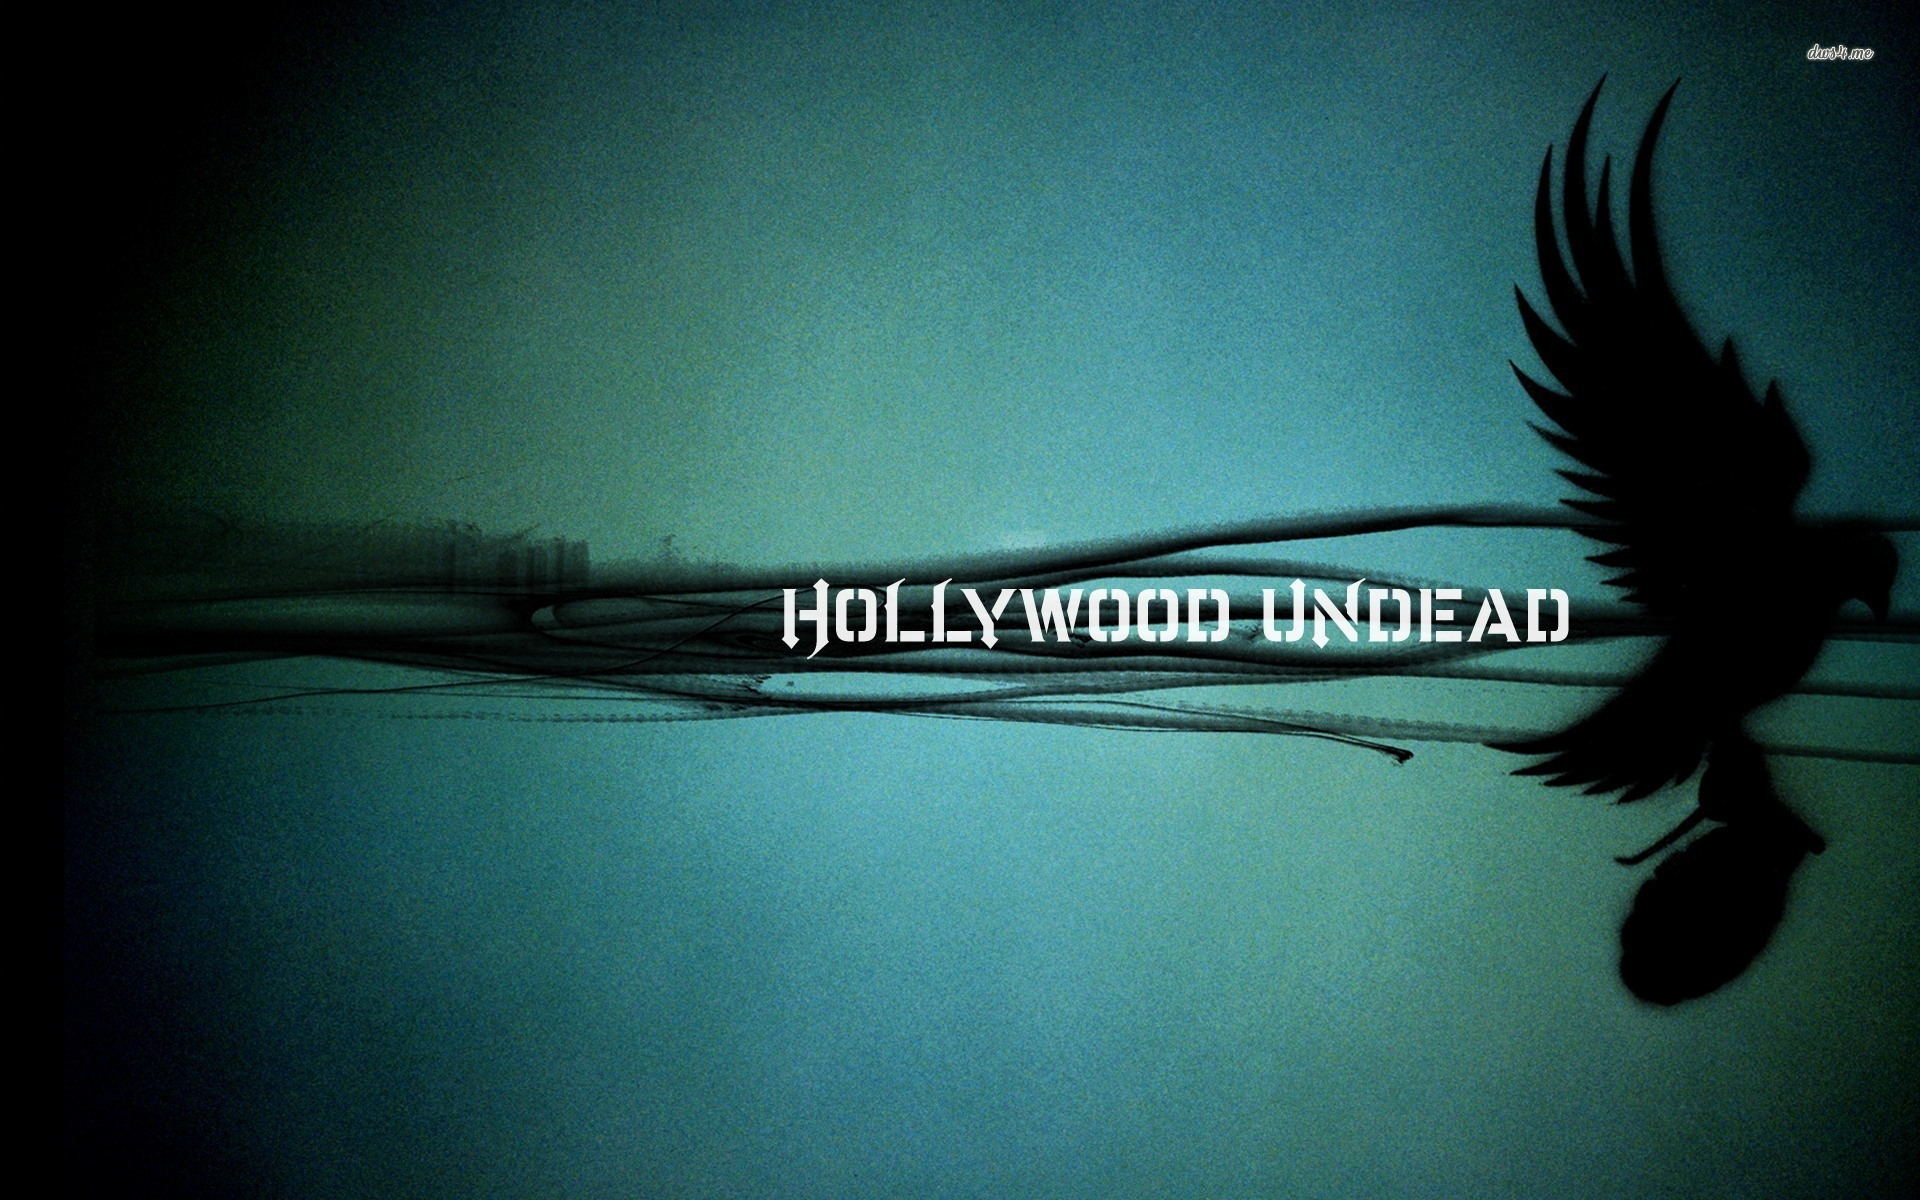 Hollywood Undead wallpaper   Music wallpapers   18274 1920x1200